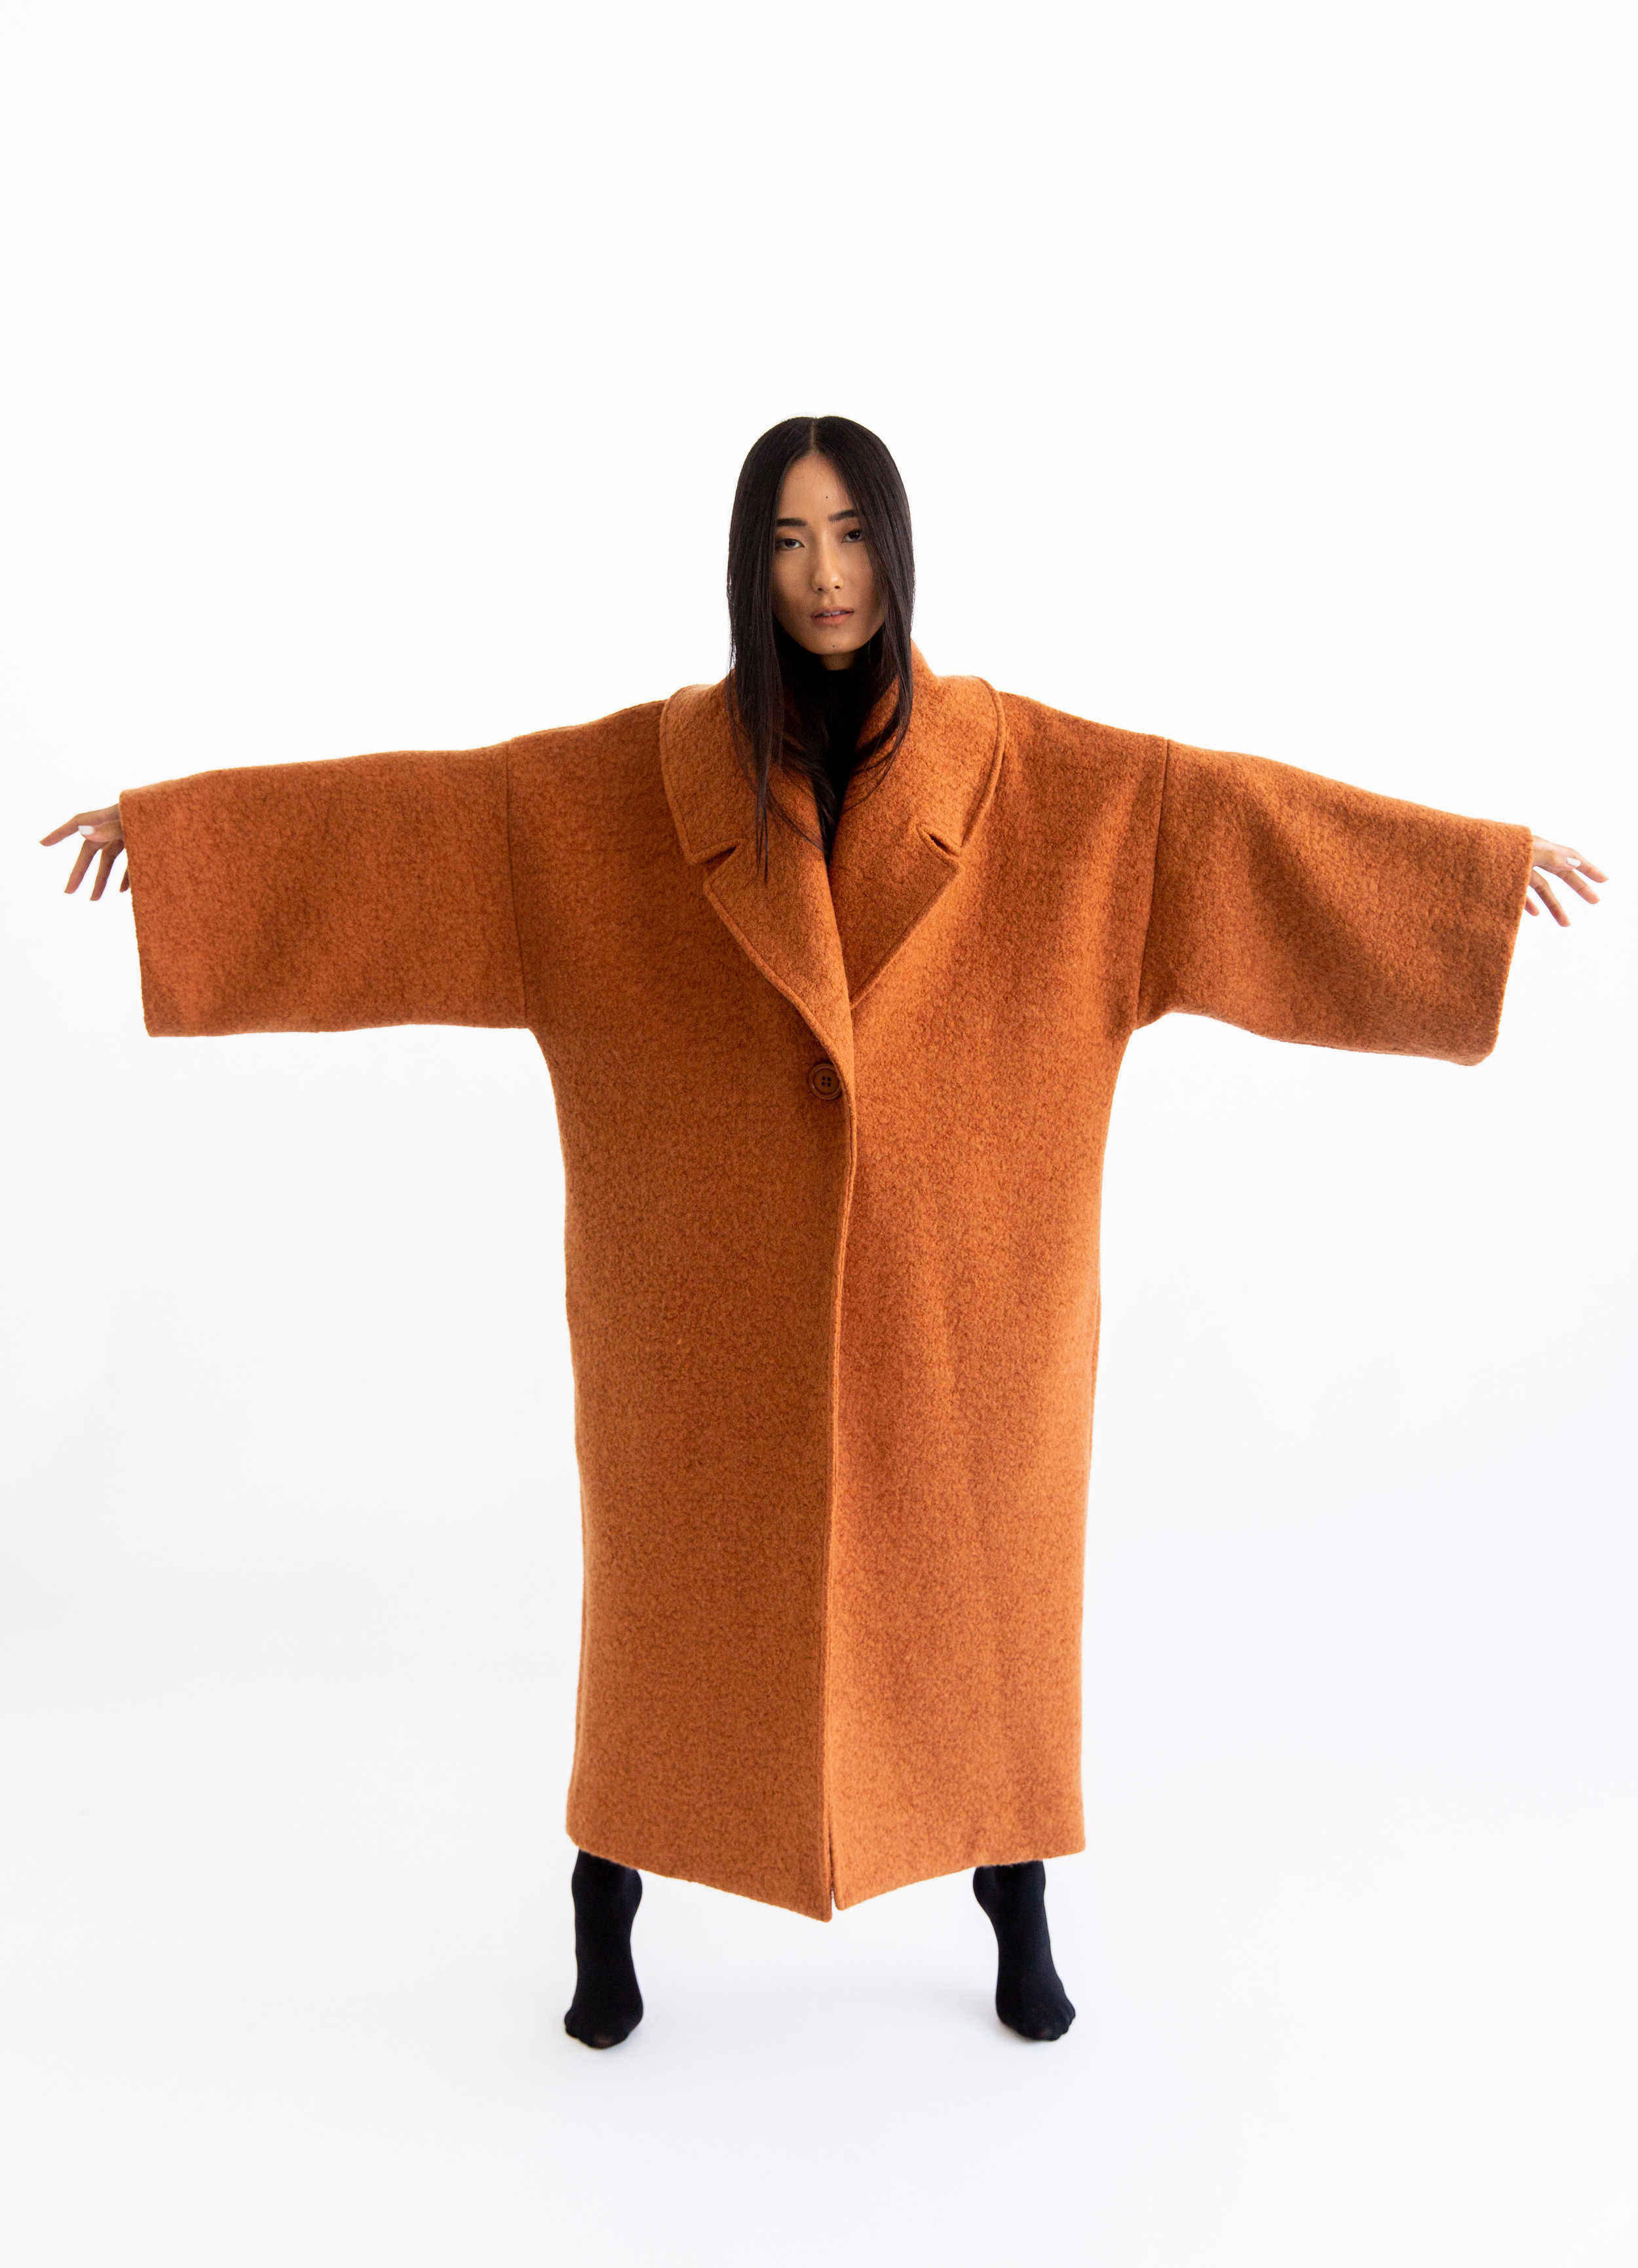 Chestnut Blanket by Mariam Alsibai on curated-crowd.com